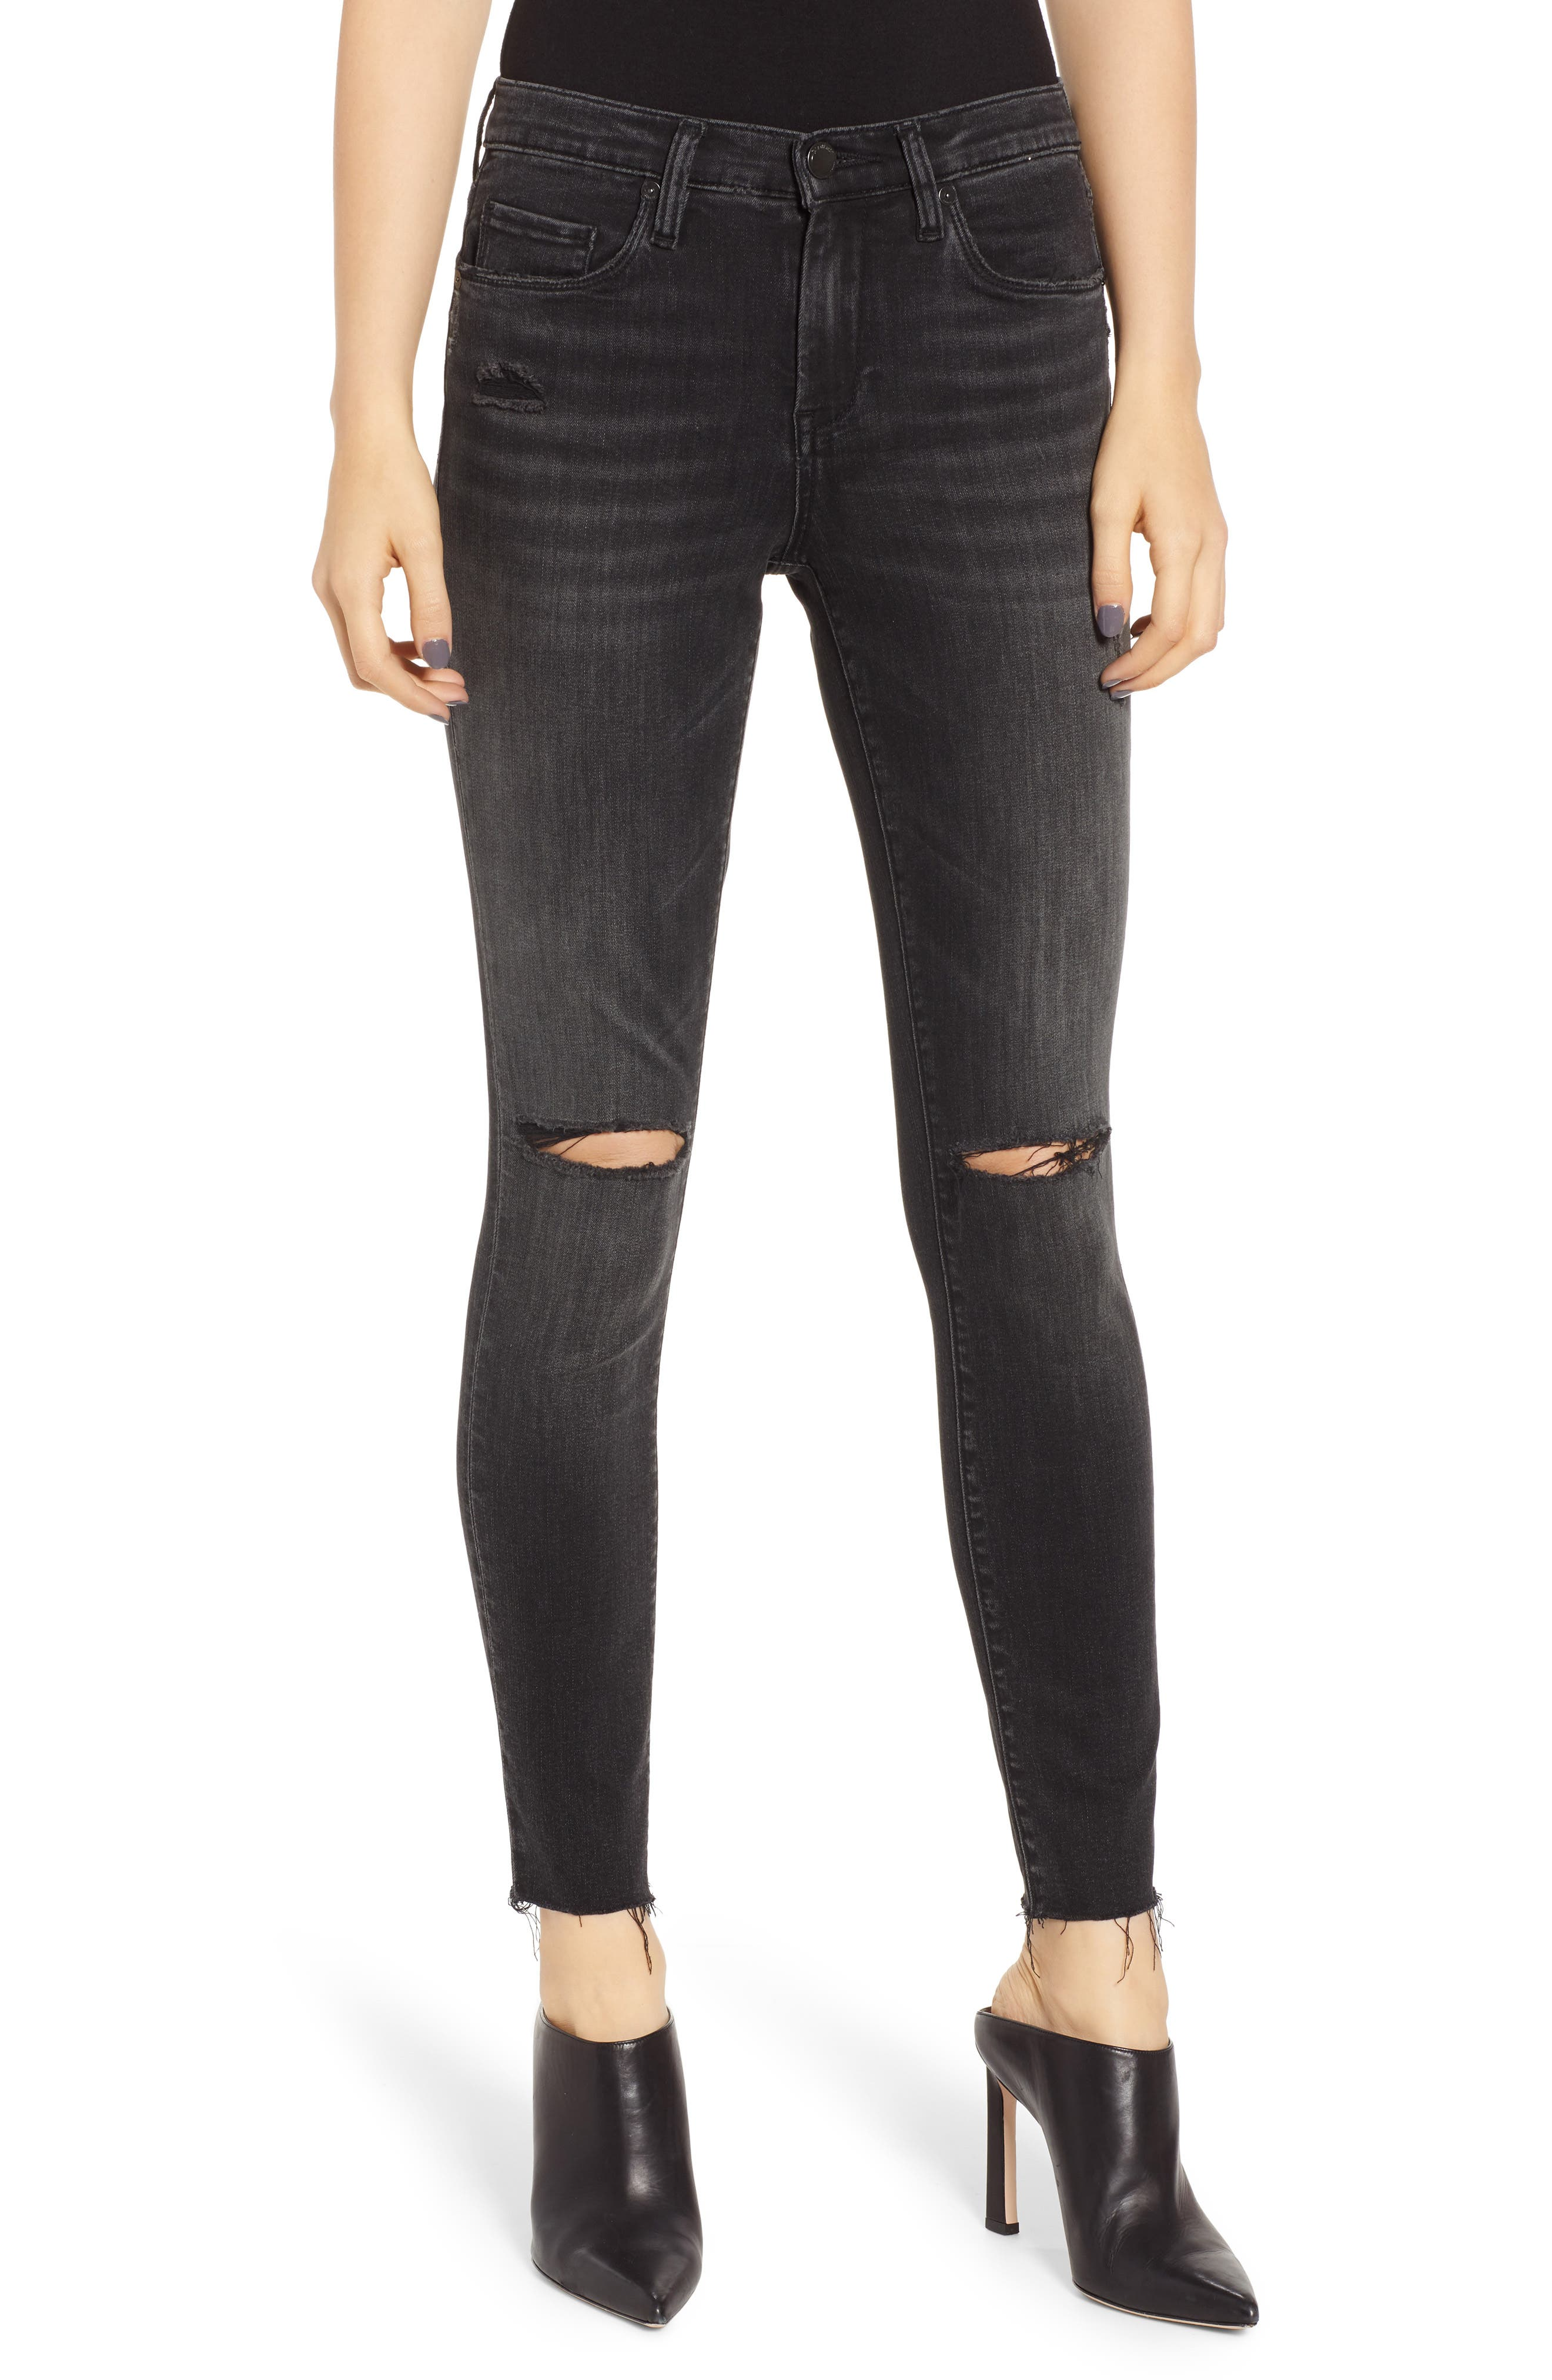 BLANKNYC, The Bond Skinny Jeans, Main thumbnail 1, color, 001